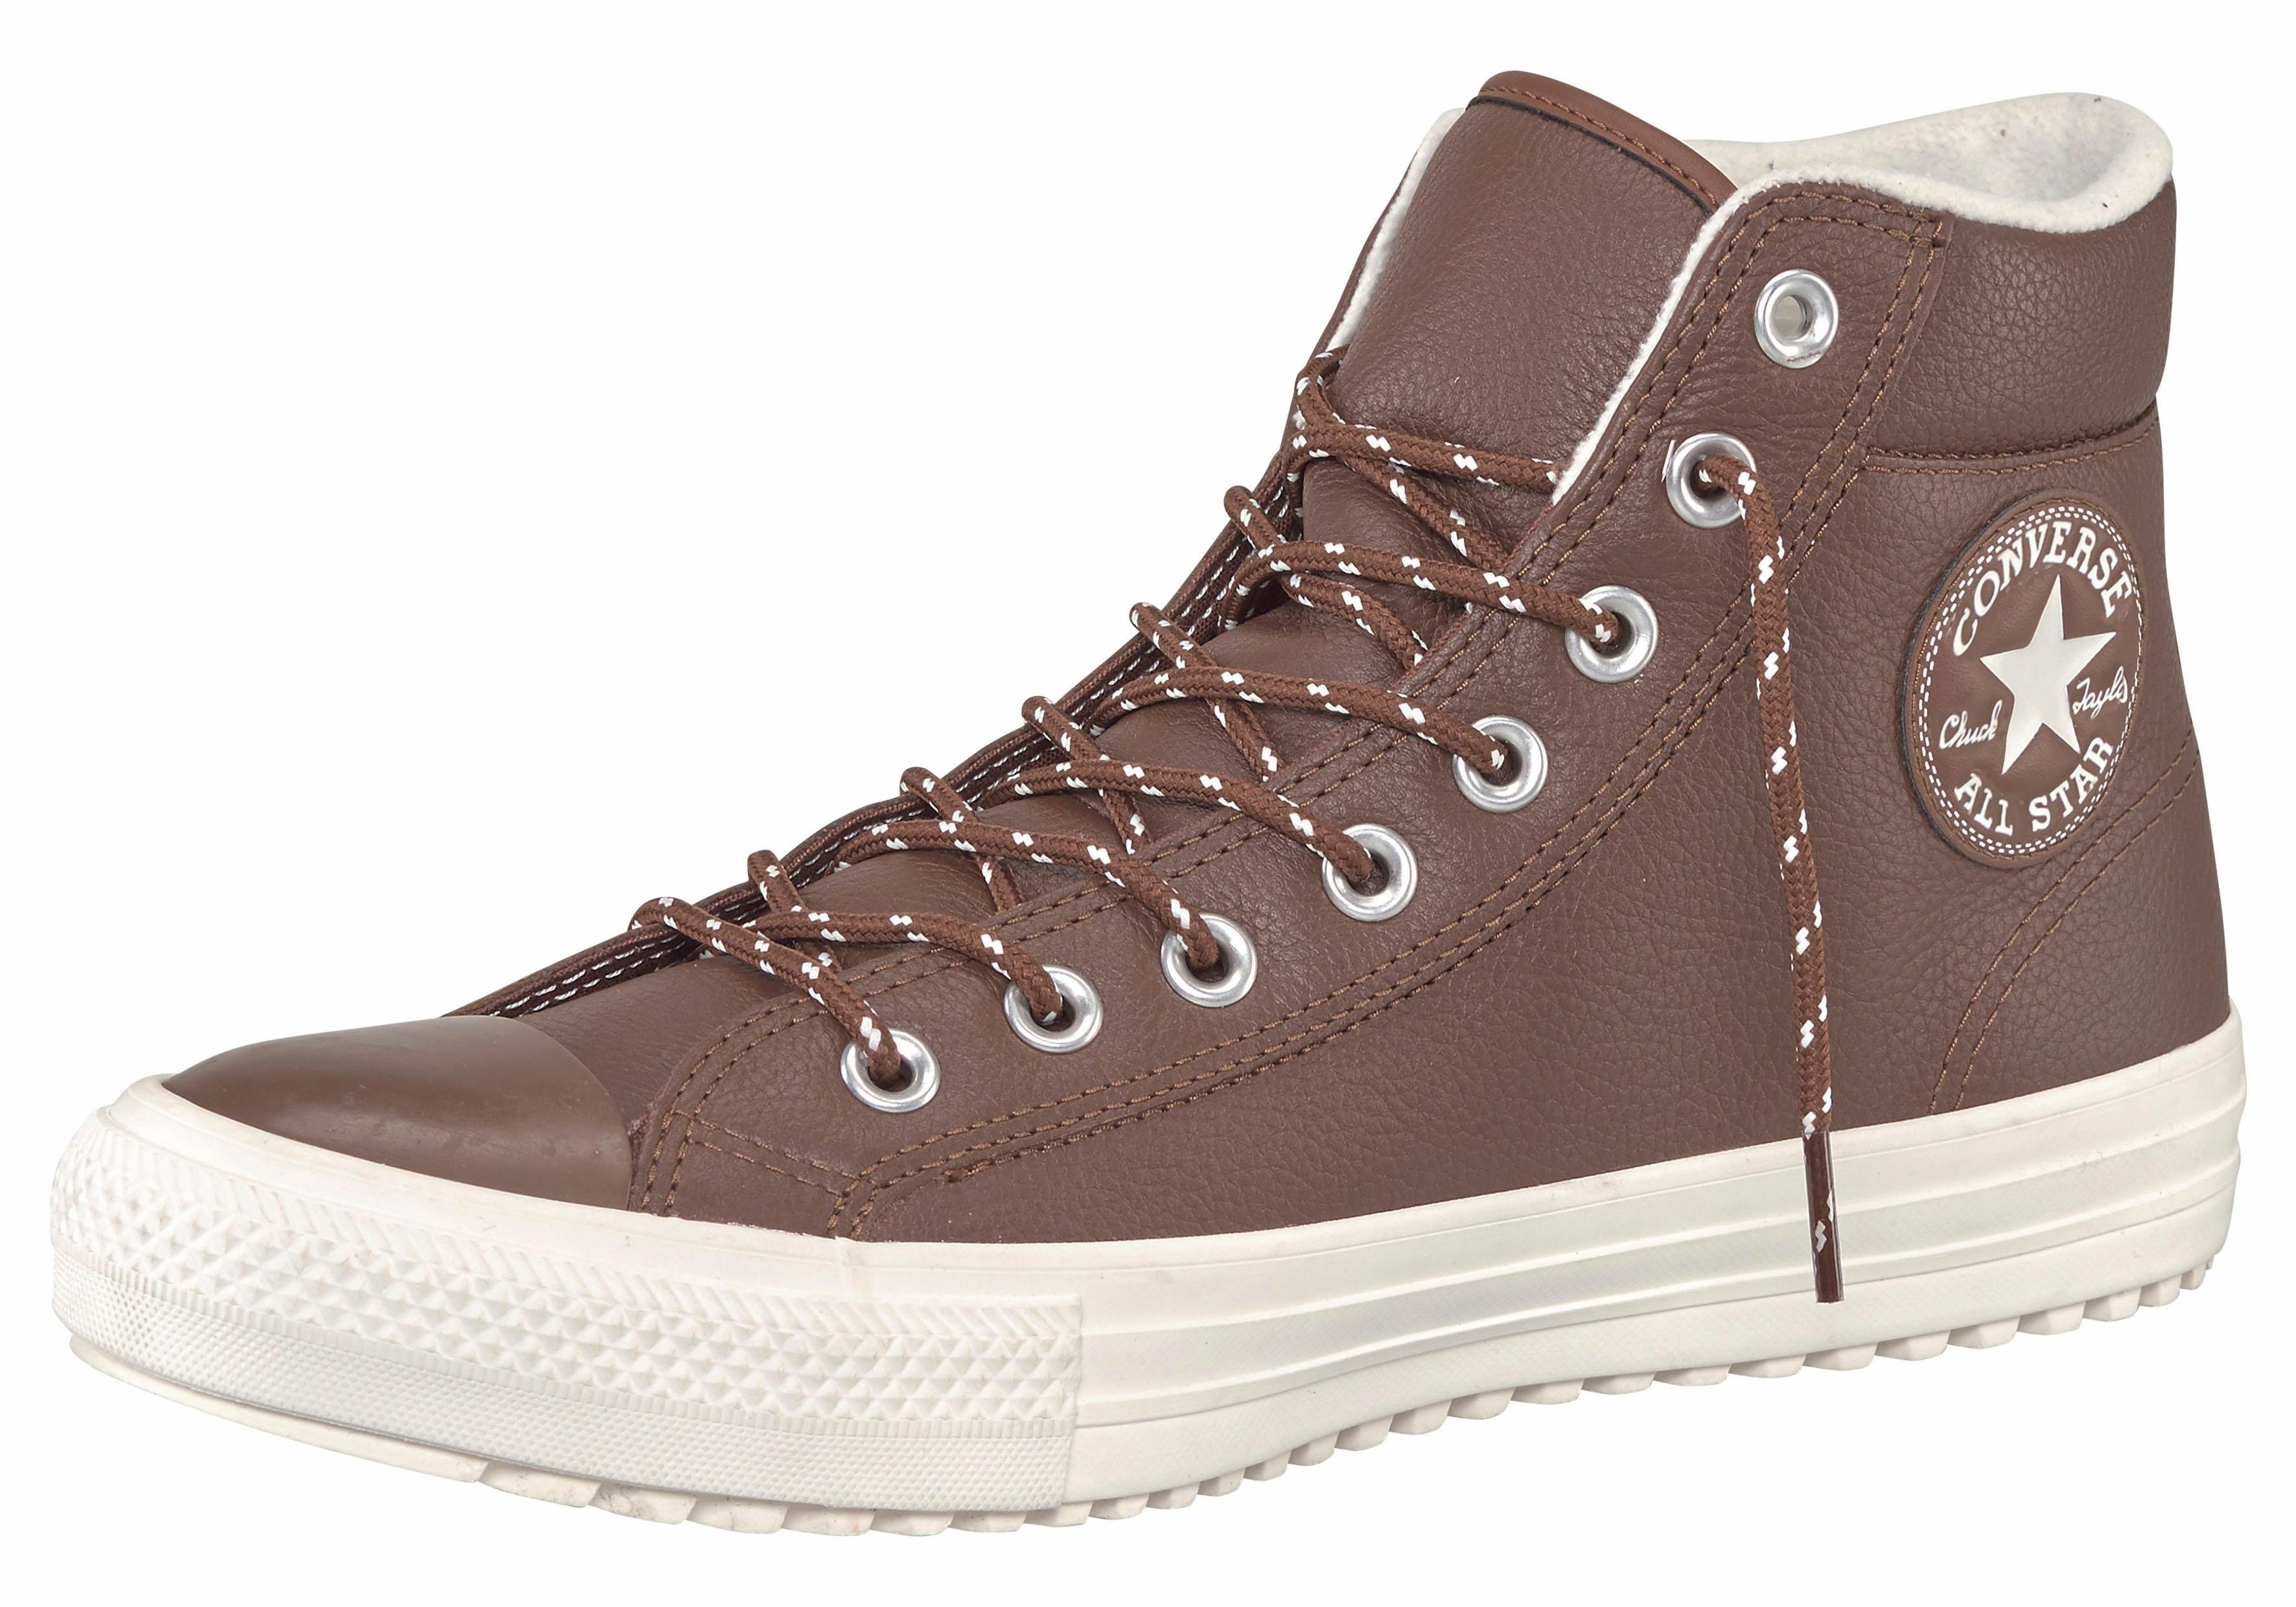 24c69370342 Afbeeldingsbron: Converse sneakers »Chuck Taylor All Star Boot Hi M«